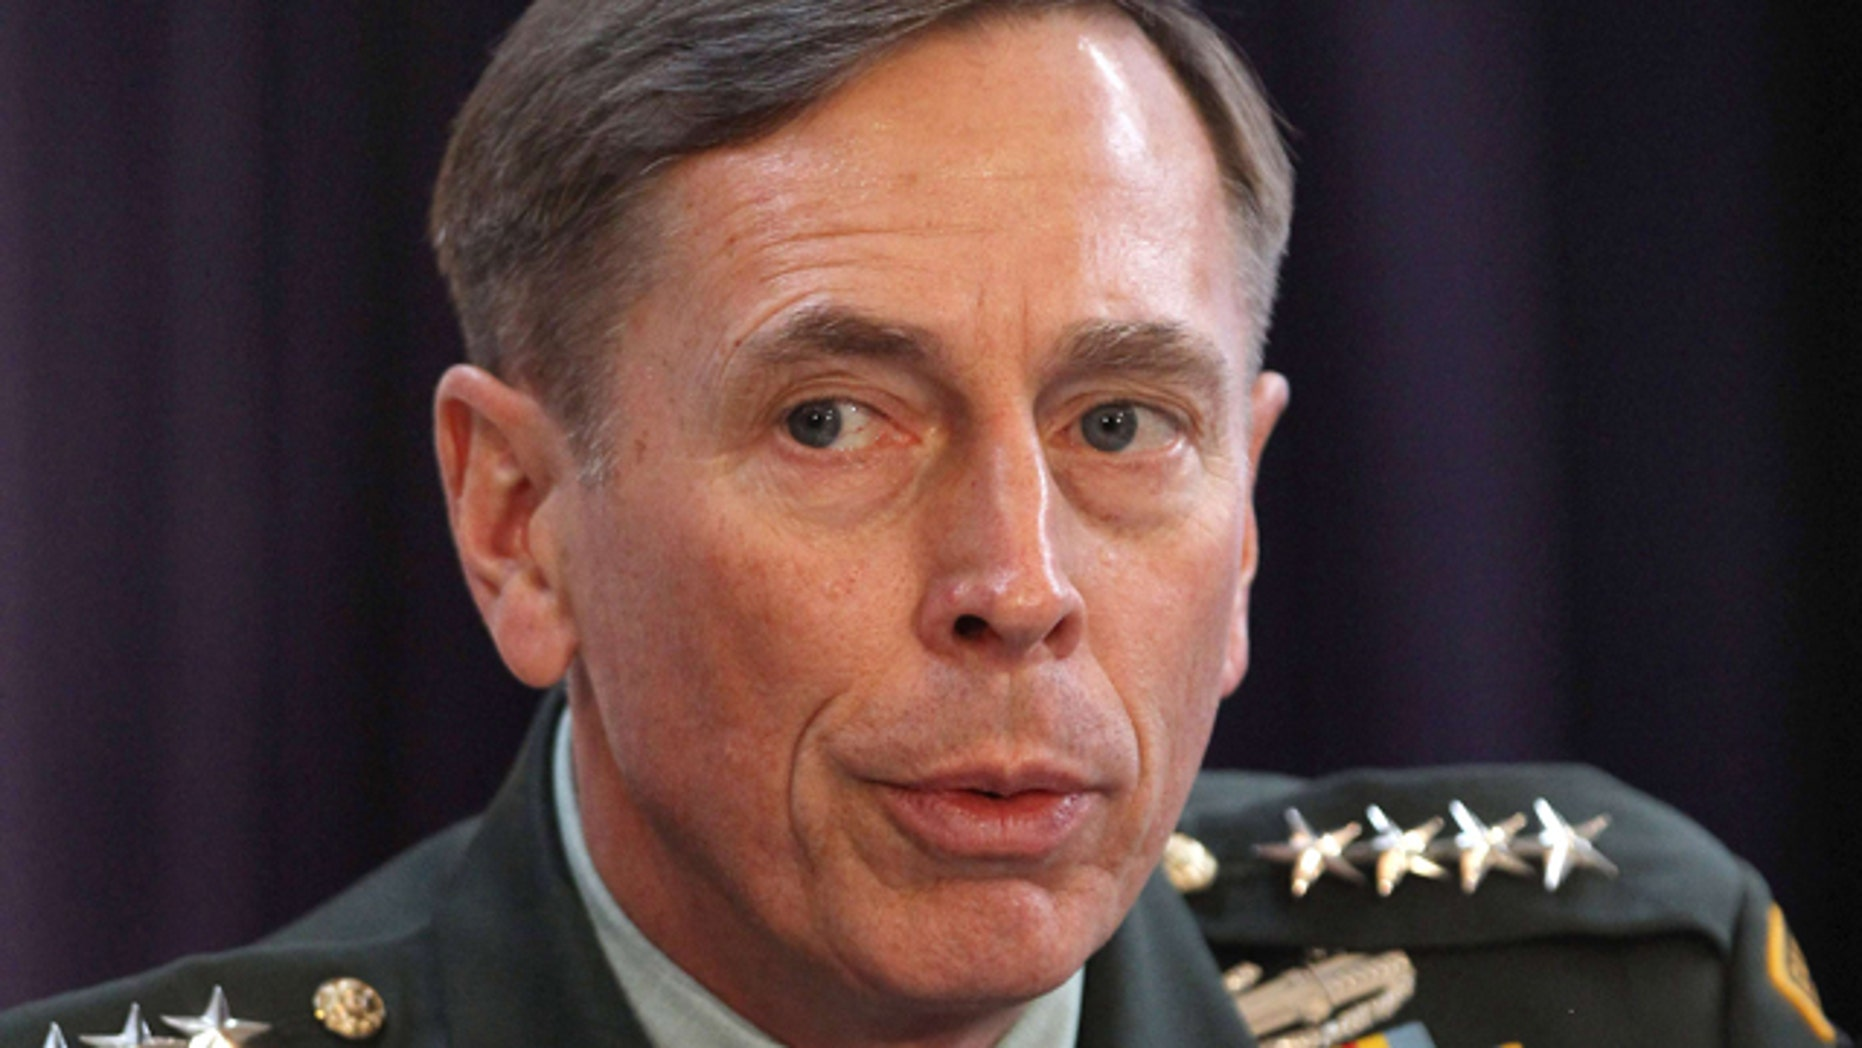 FILE - In this Friday Oct. 15, 2010 file photo, Gen. David Petraeus, the top U.S and NATO commander addresses RUSI members on 'The International Mission in Afghanistan' at the United Services Institute in central London. (AP Photo/Dan Kitwood, Pool, File)